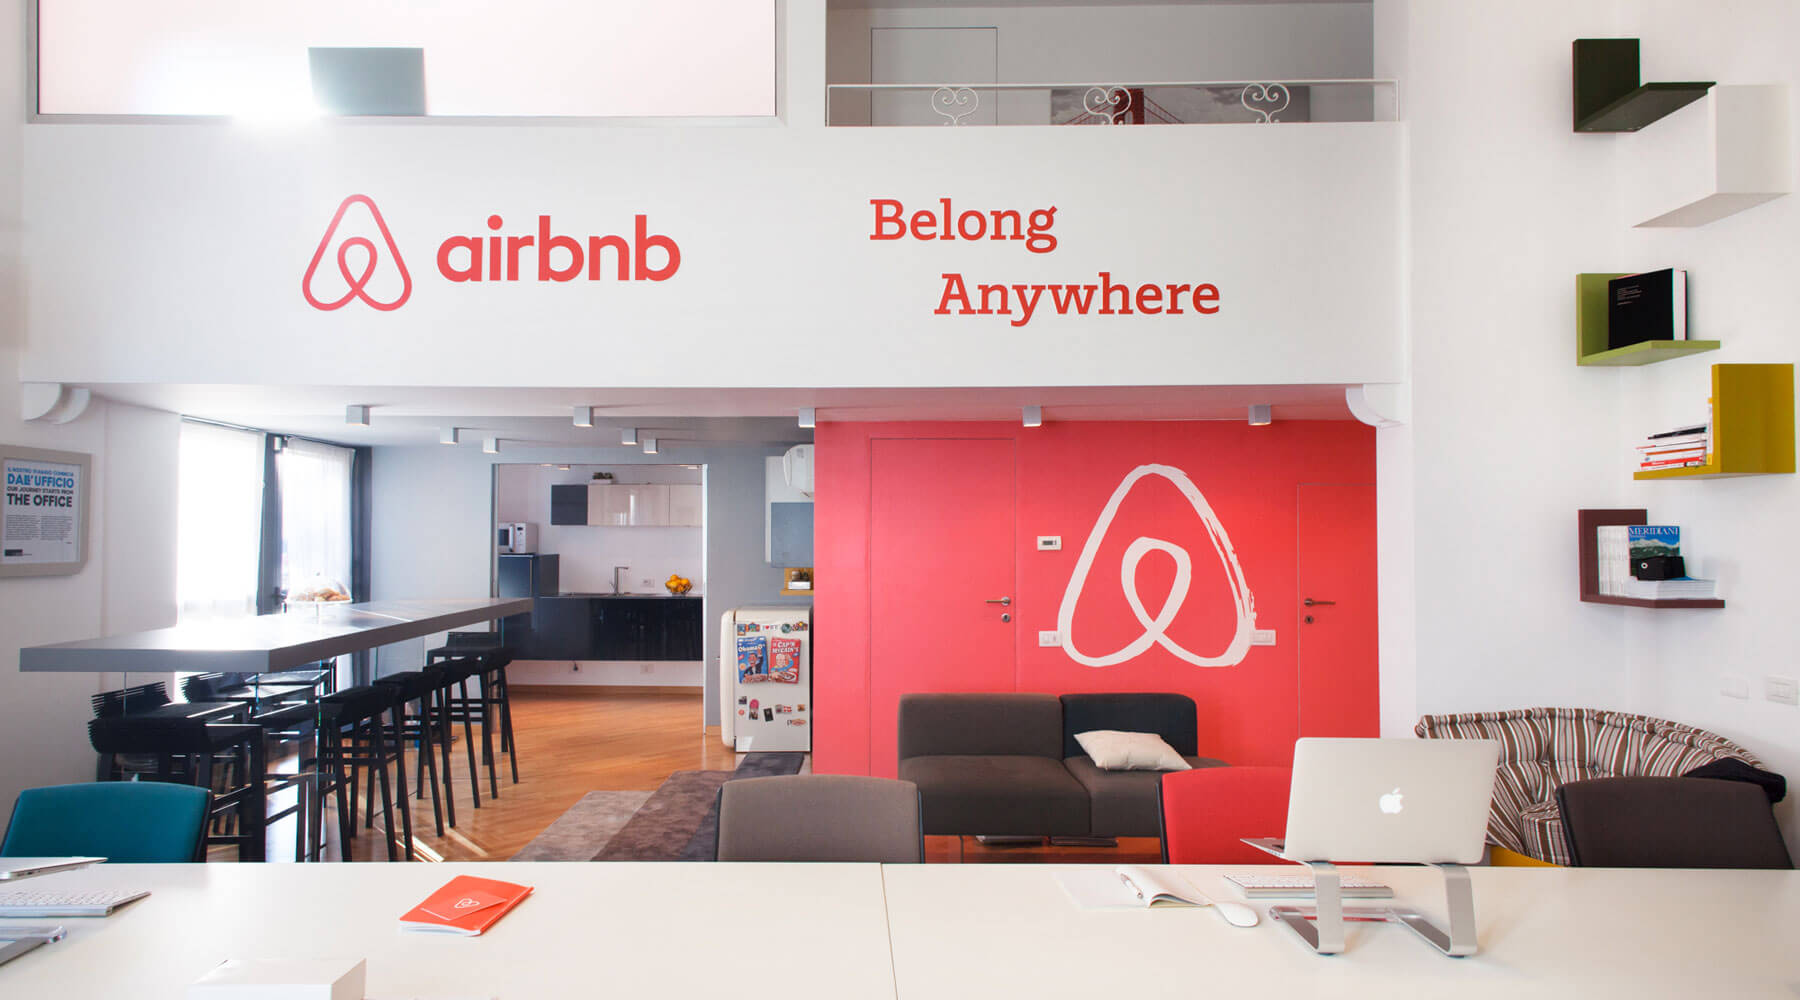 airbnb office london. Airbnb Office London. LAGO Milano Airbnb - Poltrona Huggy, Libreria  LagoLinea, Tavolo Air London